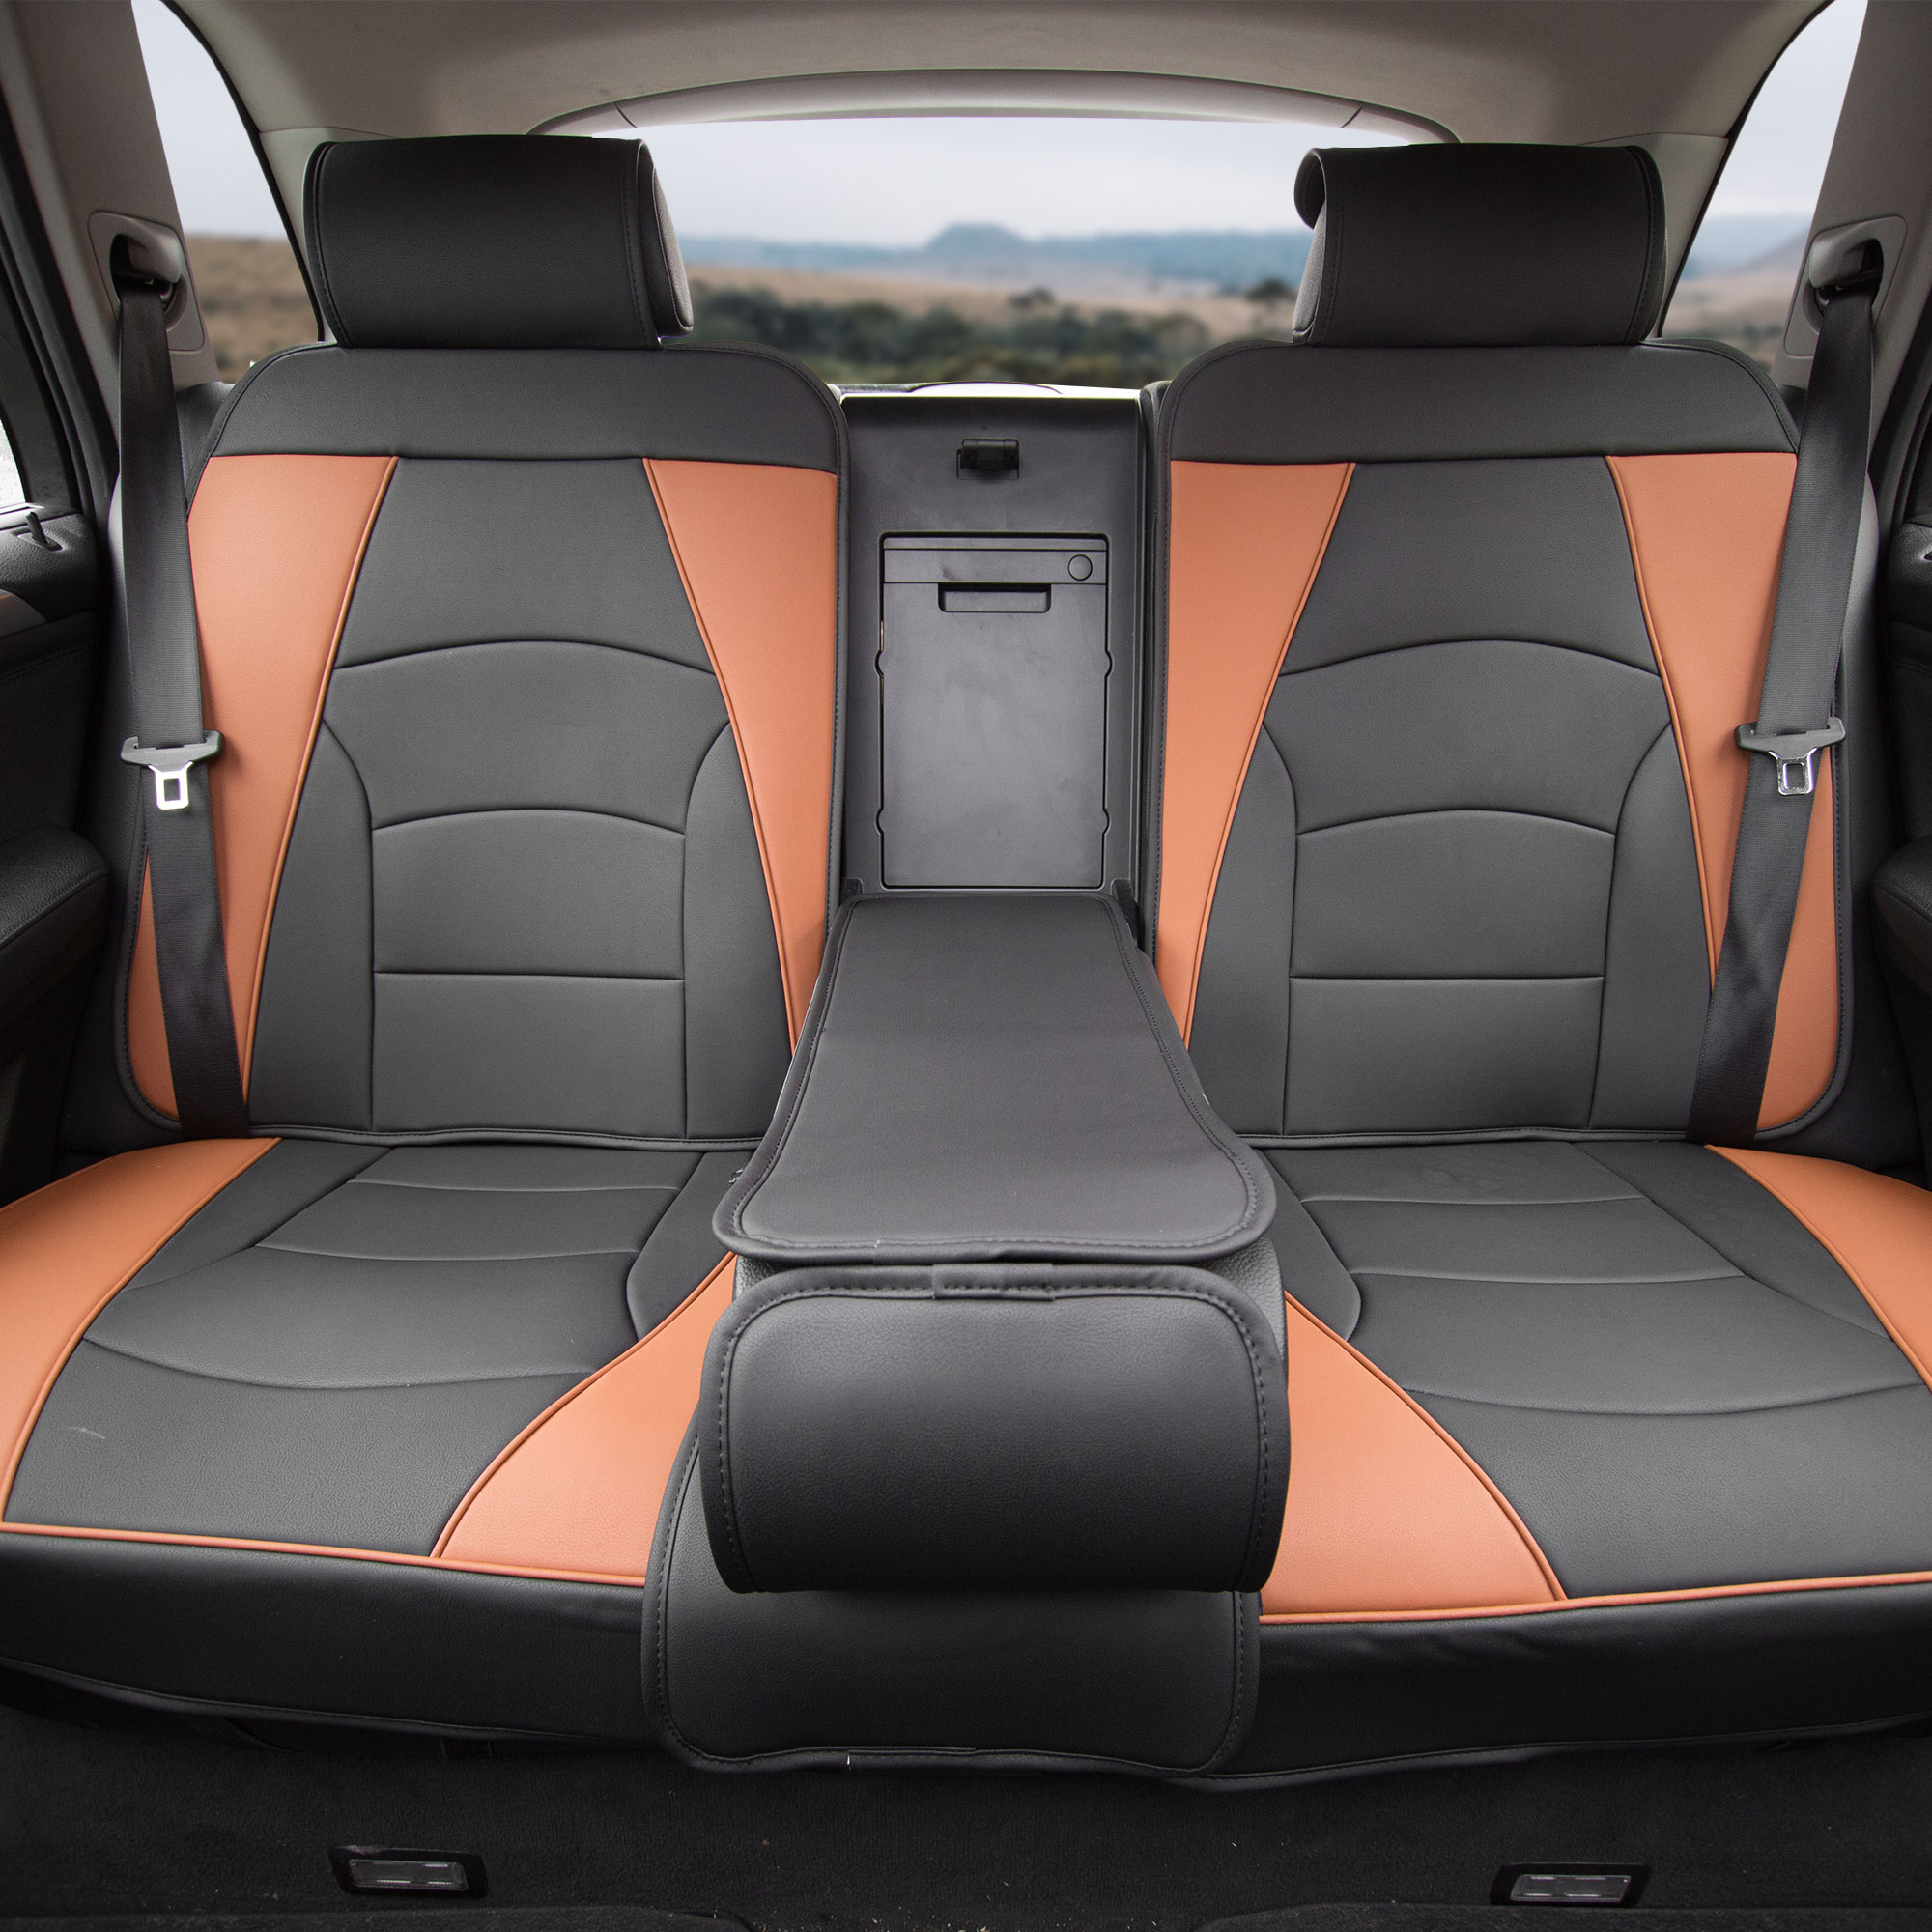 pu leather seat cushion cover w gray floor mats headrests for auto 5 colors ebay. Black Bedroom Furniture Sets. Home Design Ideas